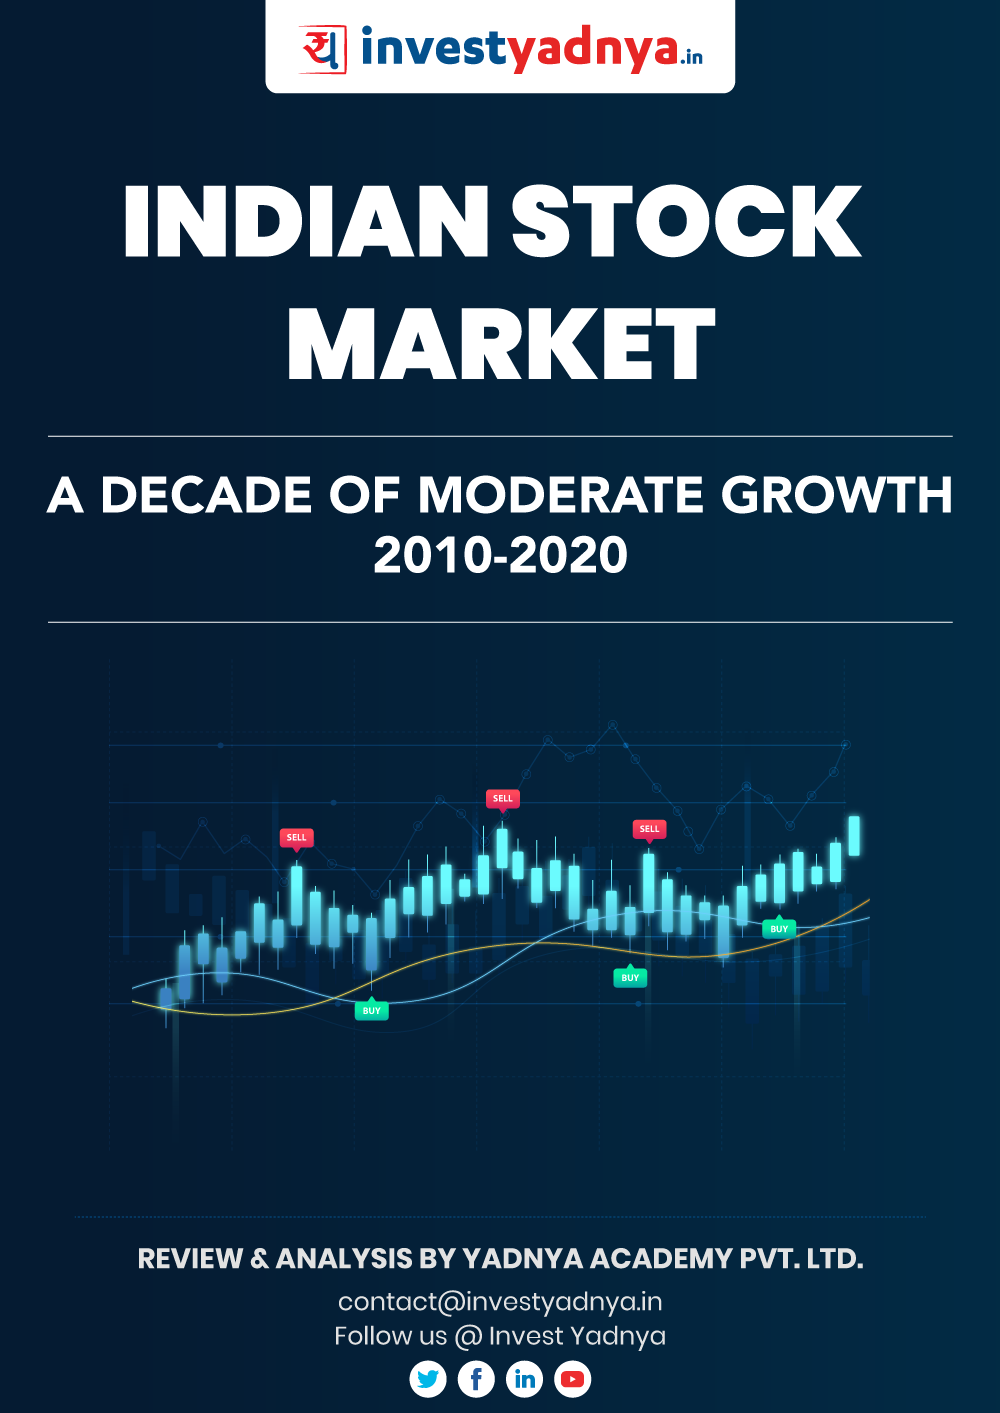 Indian Stock Market had moderate growth decade with one major recession in 2020 due to Covid. In this report, we analyzed various parameters and understood how the markets changed in last 10 years.